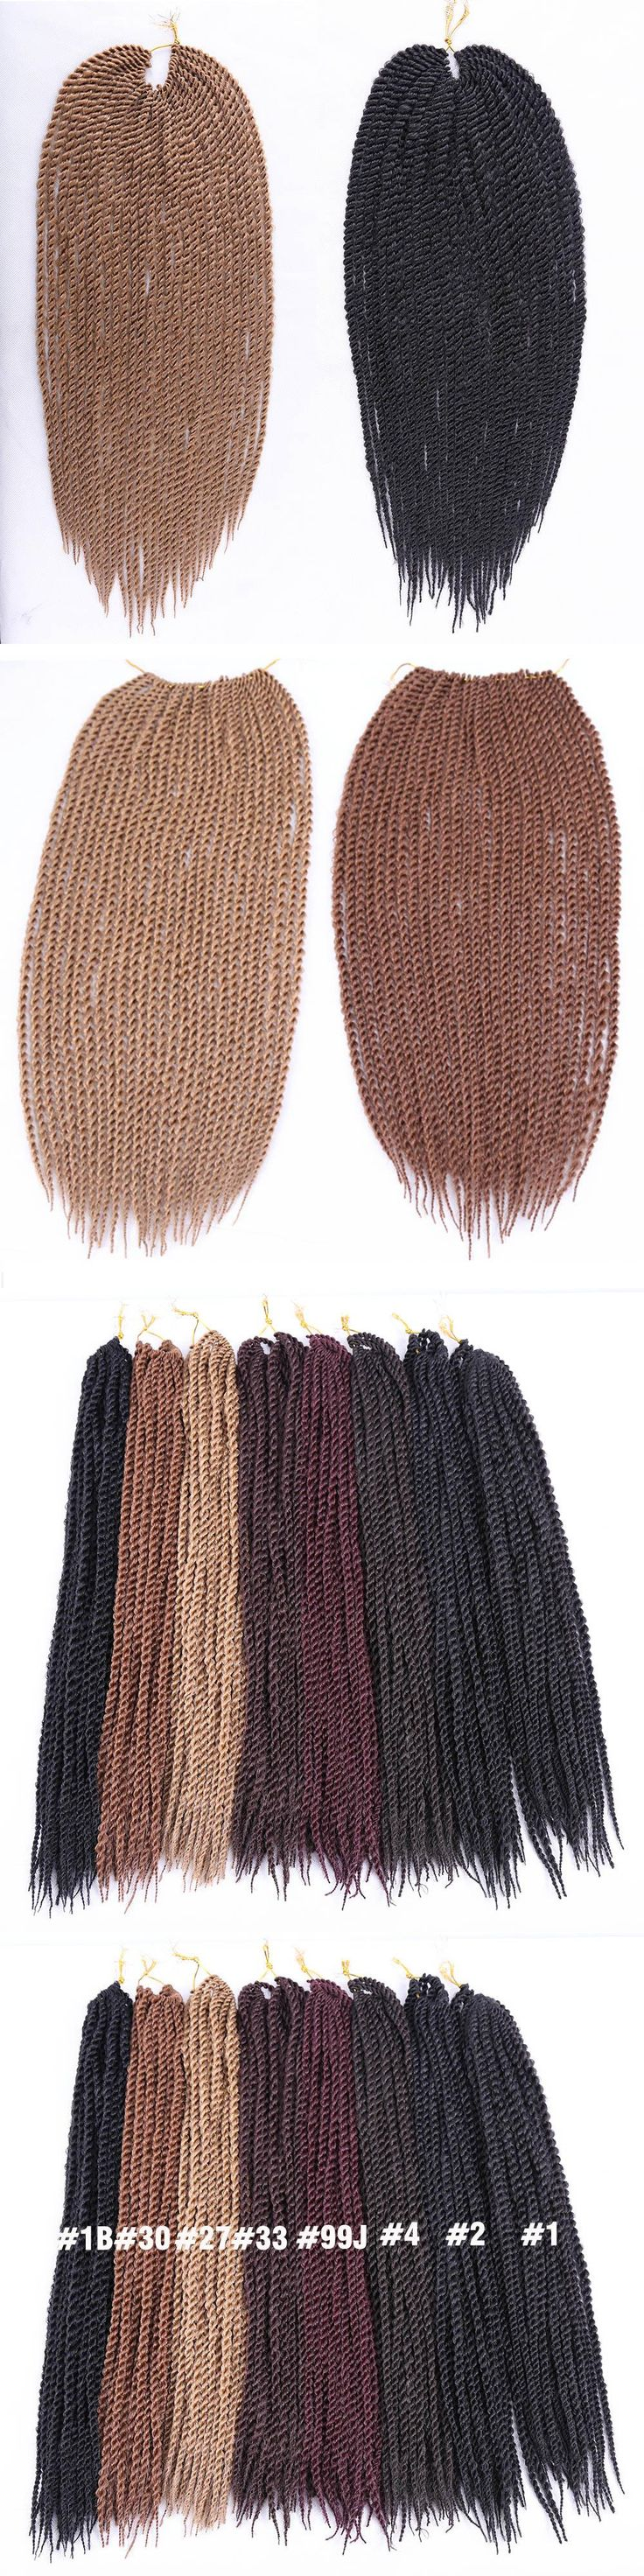 """Amir Hair 18-22"""" Synthetic Havana Twist Braiding Hair with Long Black and Blonde Crochet hair extensions  Free gift"""